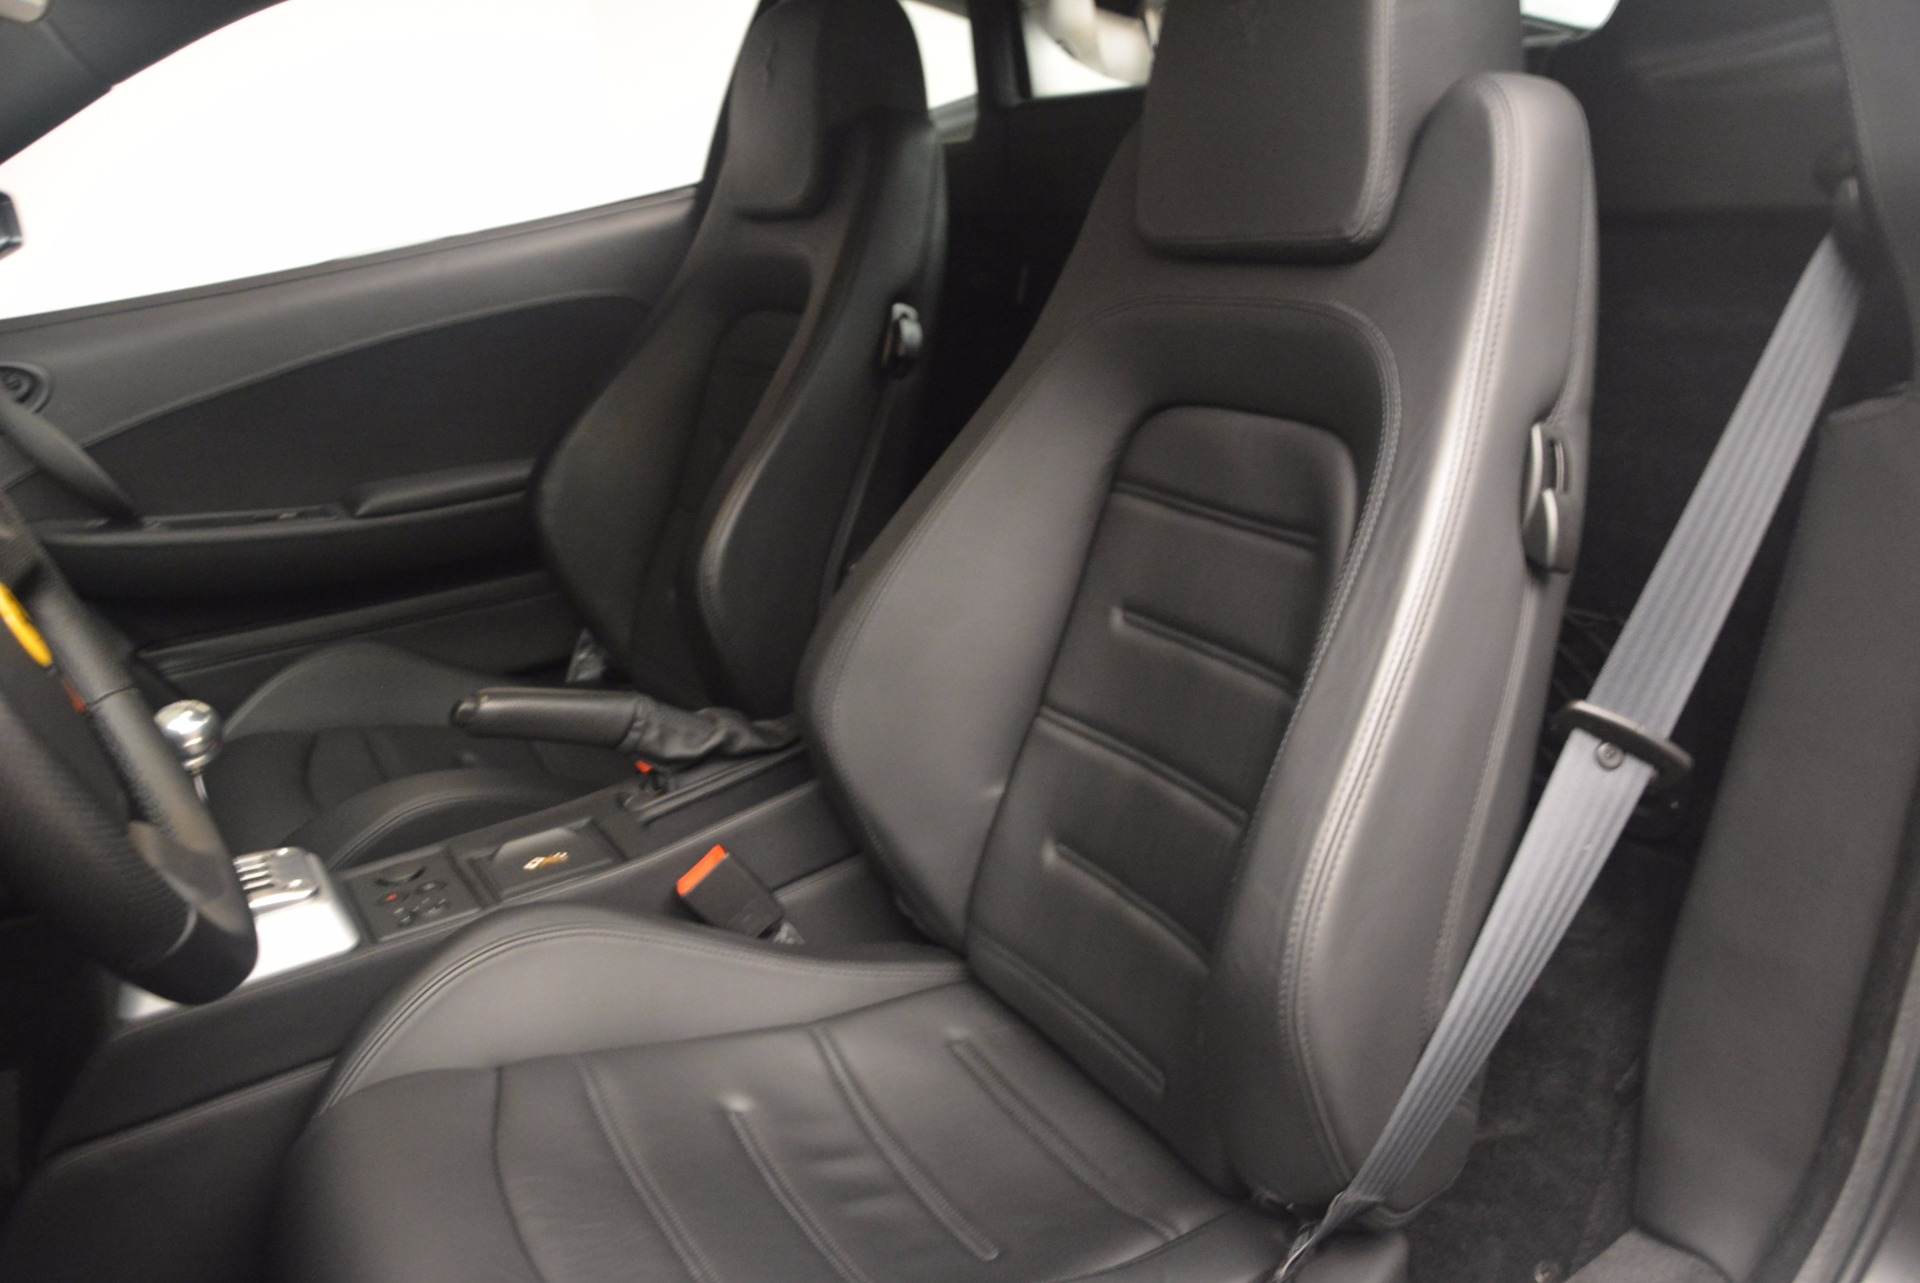 Used 2005 Ferrari F430 6-Speed Manual For Sale In Greenwich, CT 1286_p15